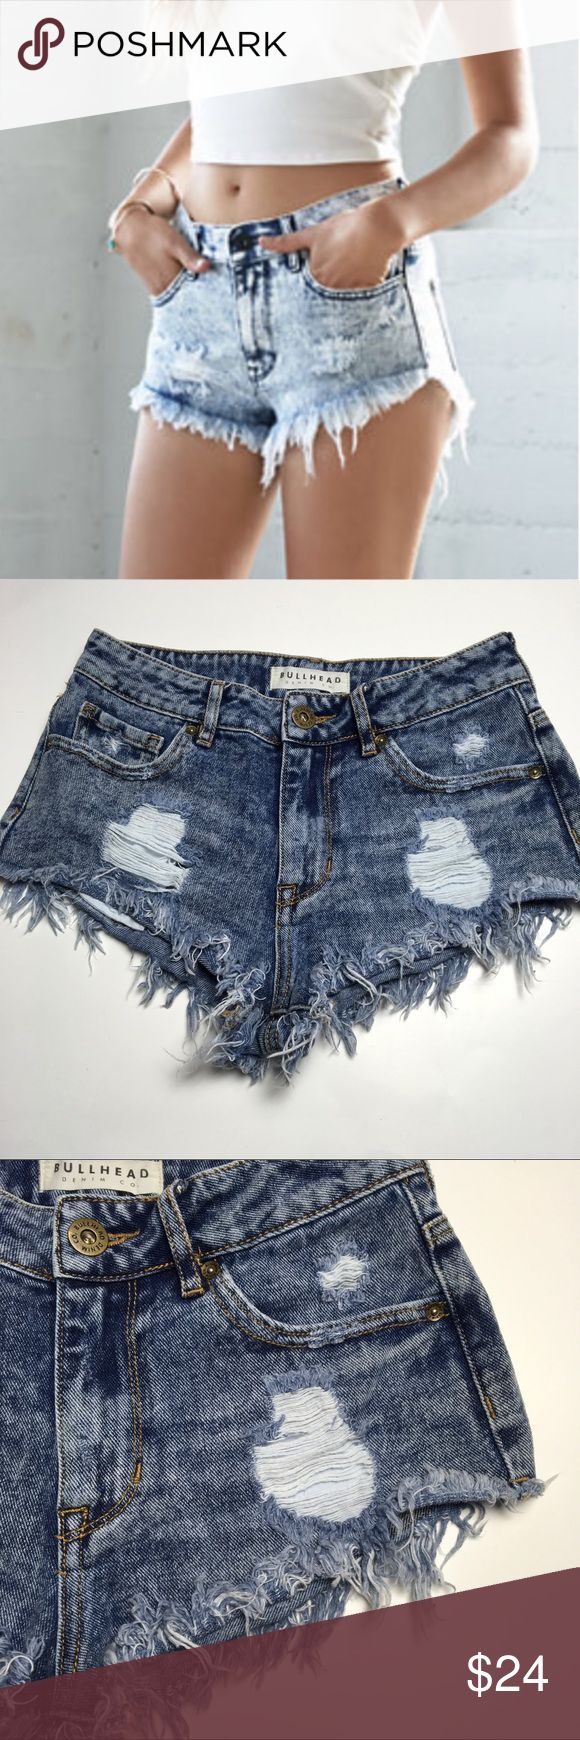 Sexy Daisy Duke Frayed Shorts 💋 Similar style to cover shot. Super short high waisted distressed frayed shorts. Great for summer. Like new. Bullhead Shorts